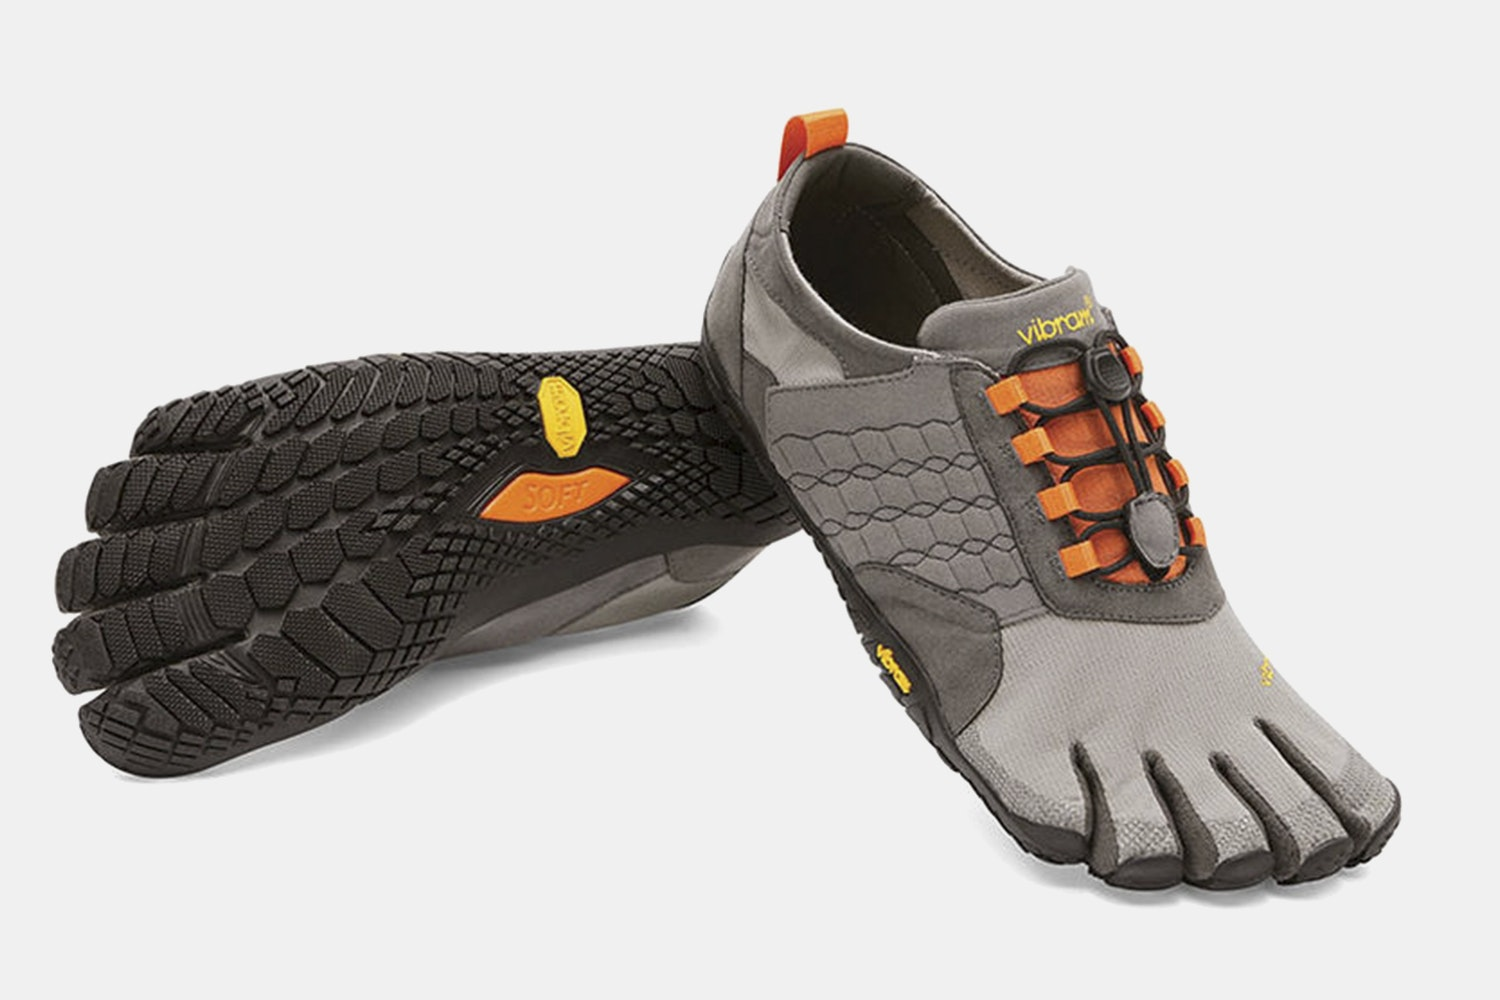 Men's – Gray/Black/Orange